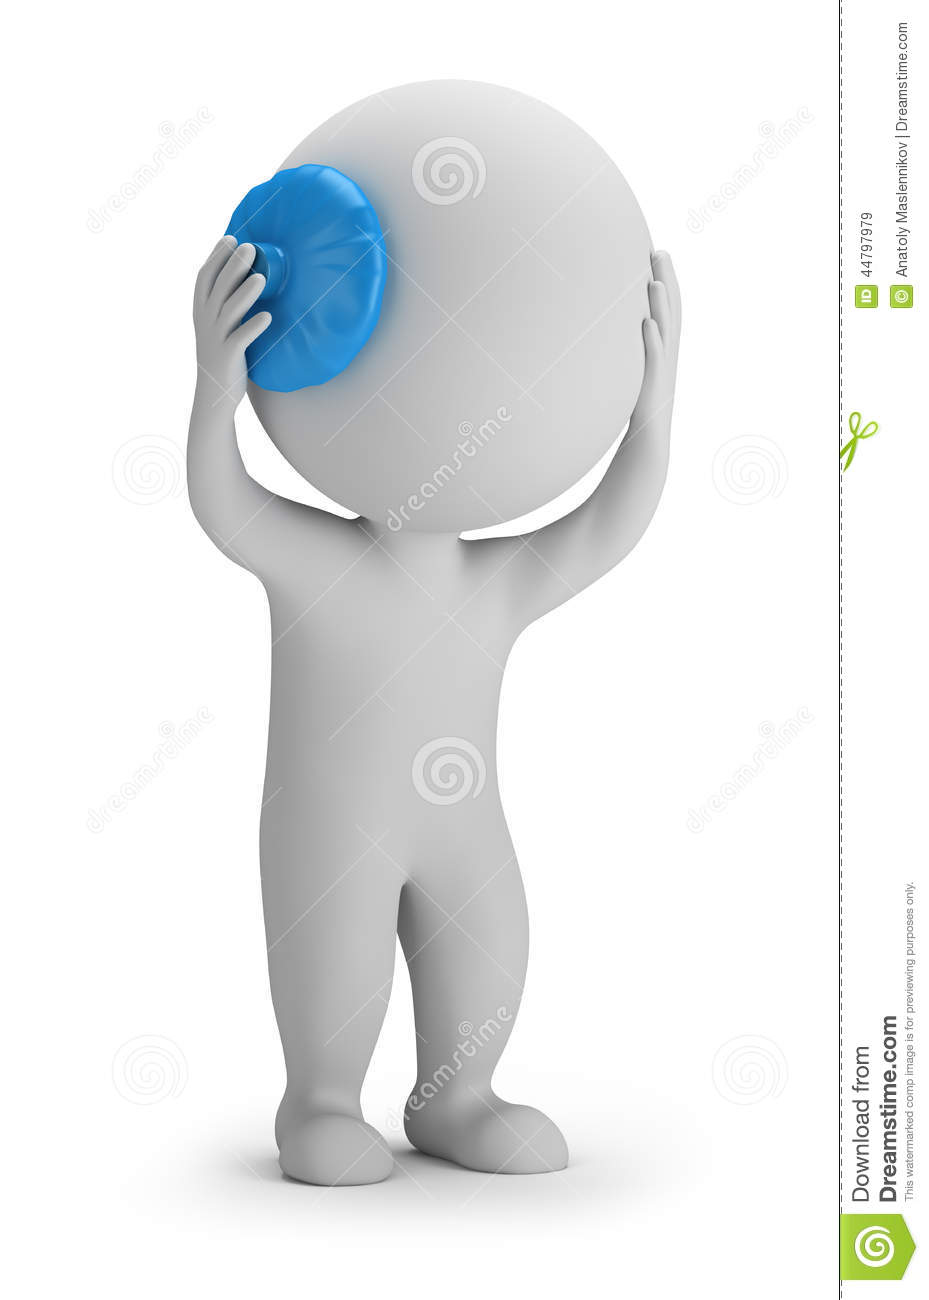 Person Holding His Head On The Ice Pack  3d Image  White Background